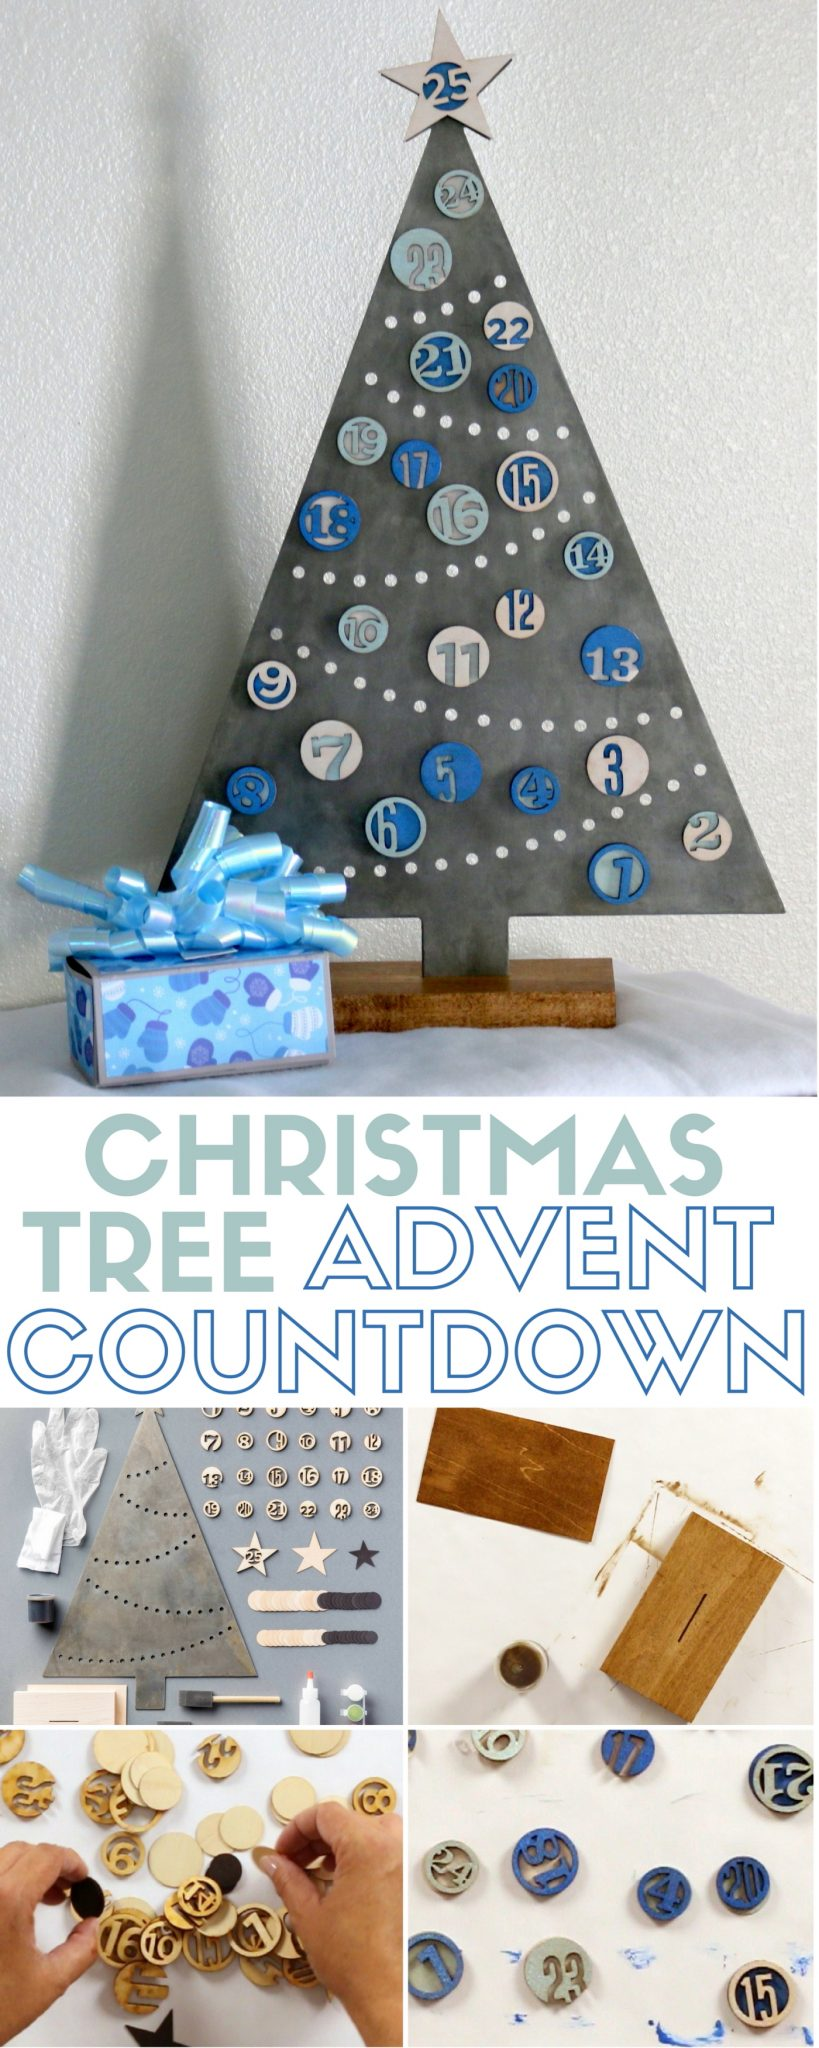 Countdown to Christmas Day with this Christmas Tree Advent Calendar that will quickly become part of your holiday traditions and decor.